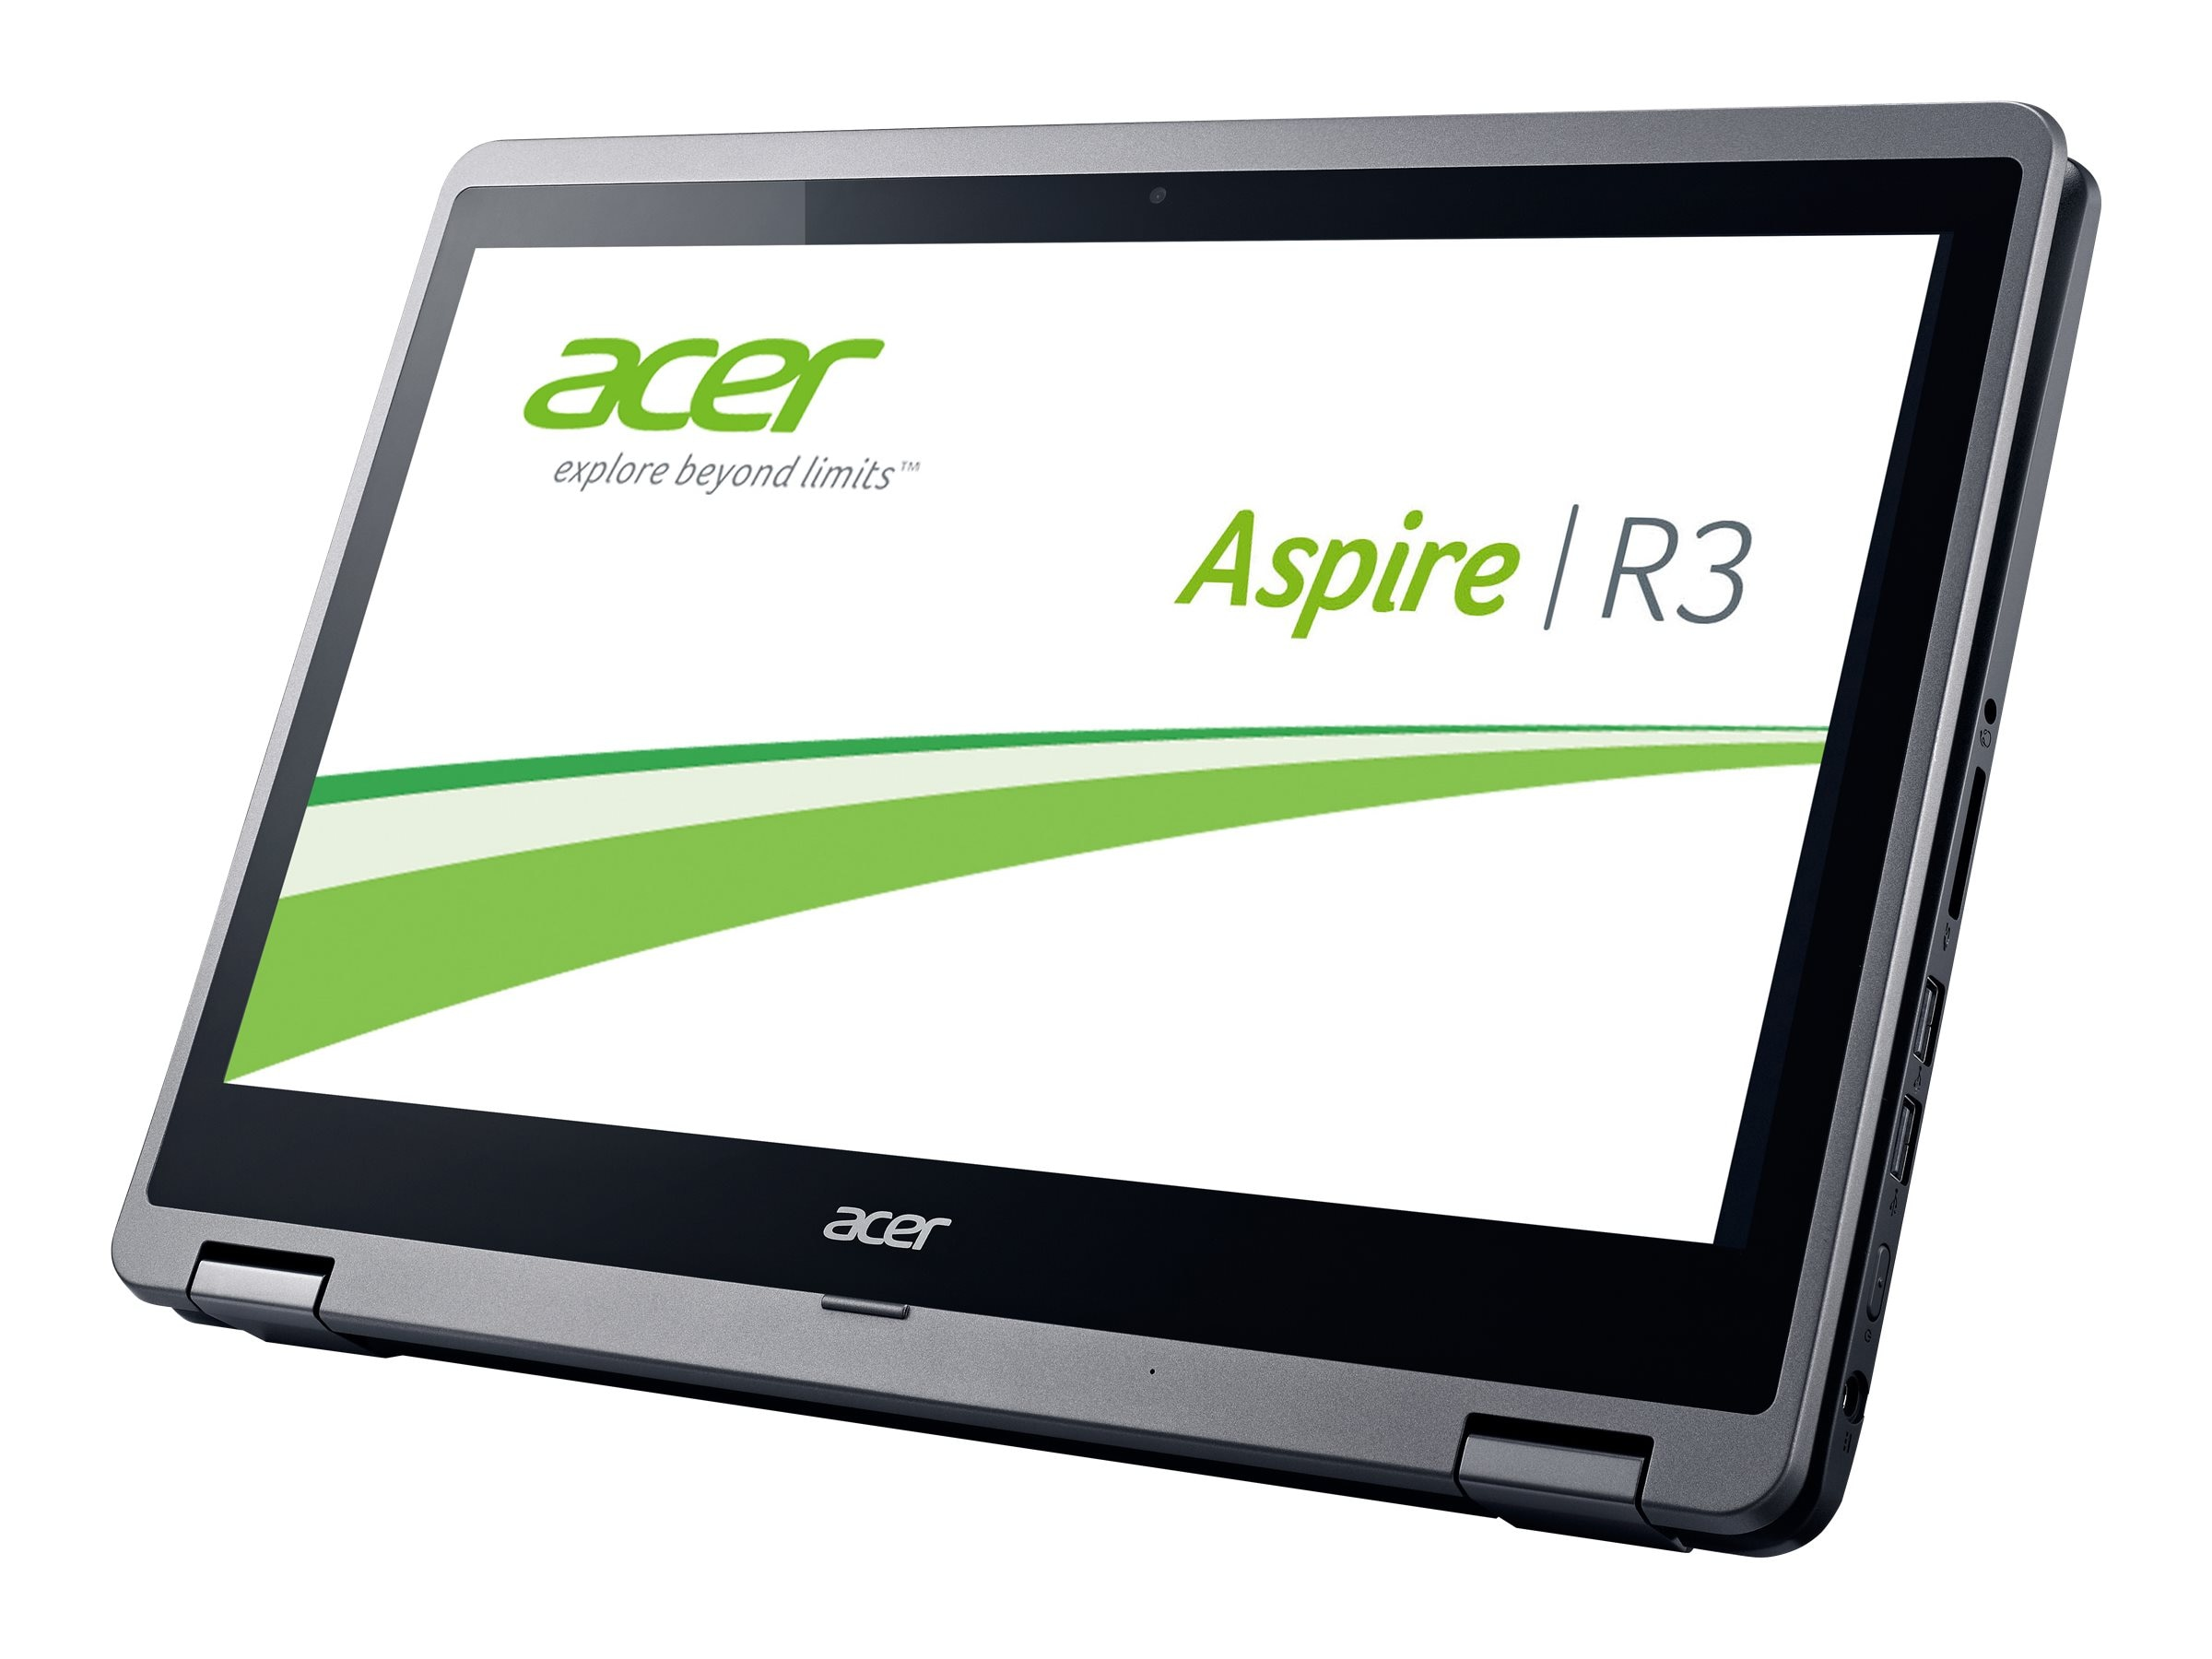 Acer Aspire R3-471T-56BQ Core i5-5200U 2.2GHz 4GB 500GB bgn GNIC WC 4C 14 HD MT W8.1-64